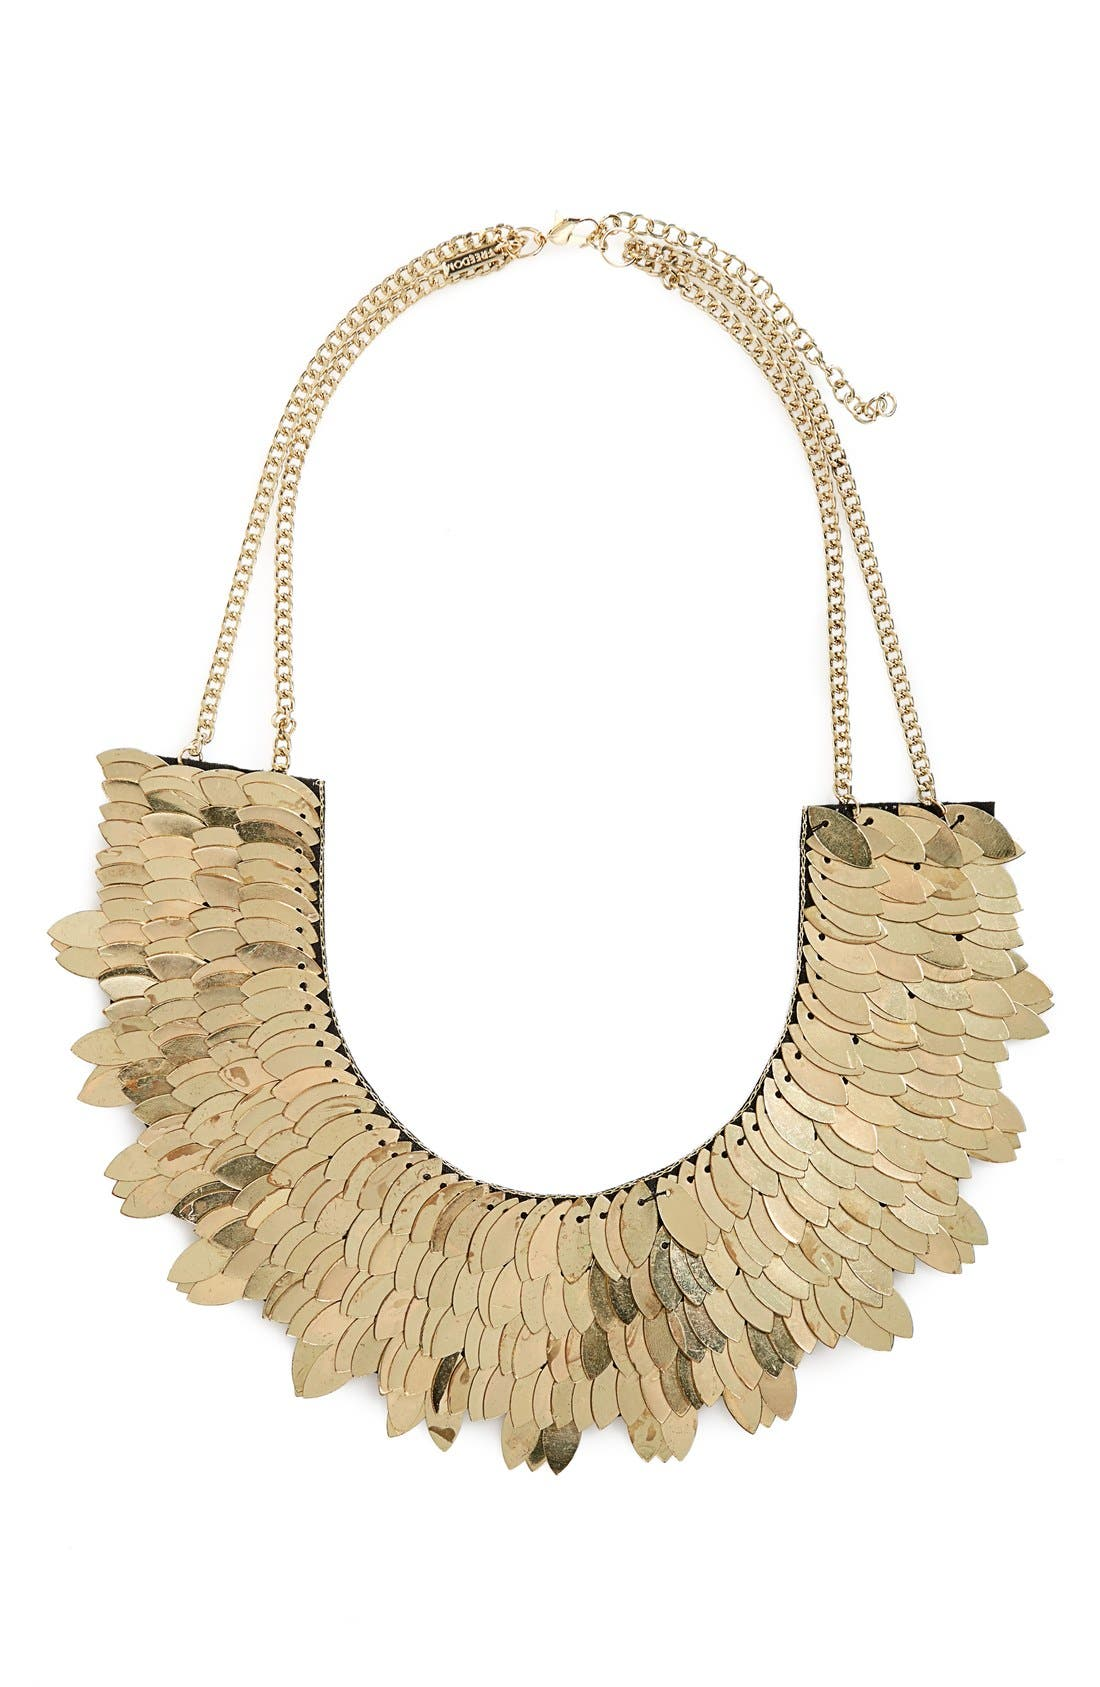 Main Image - Topshop Metallic Leaf Necklace